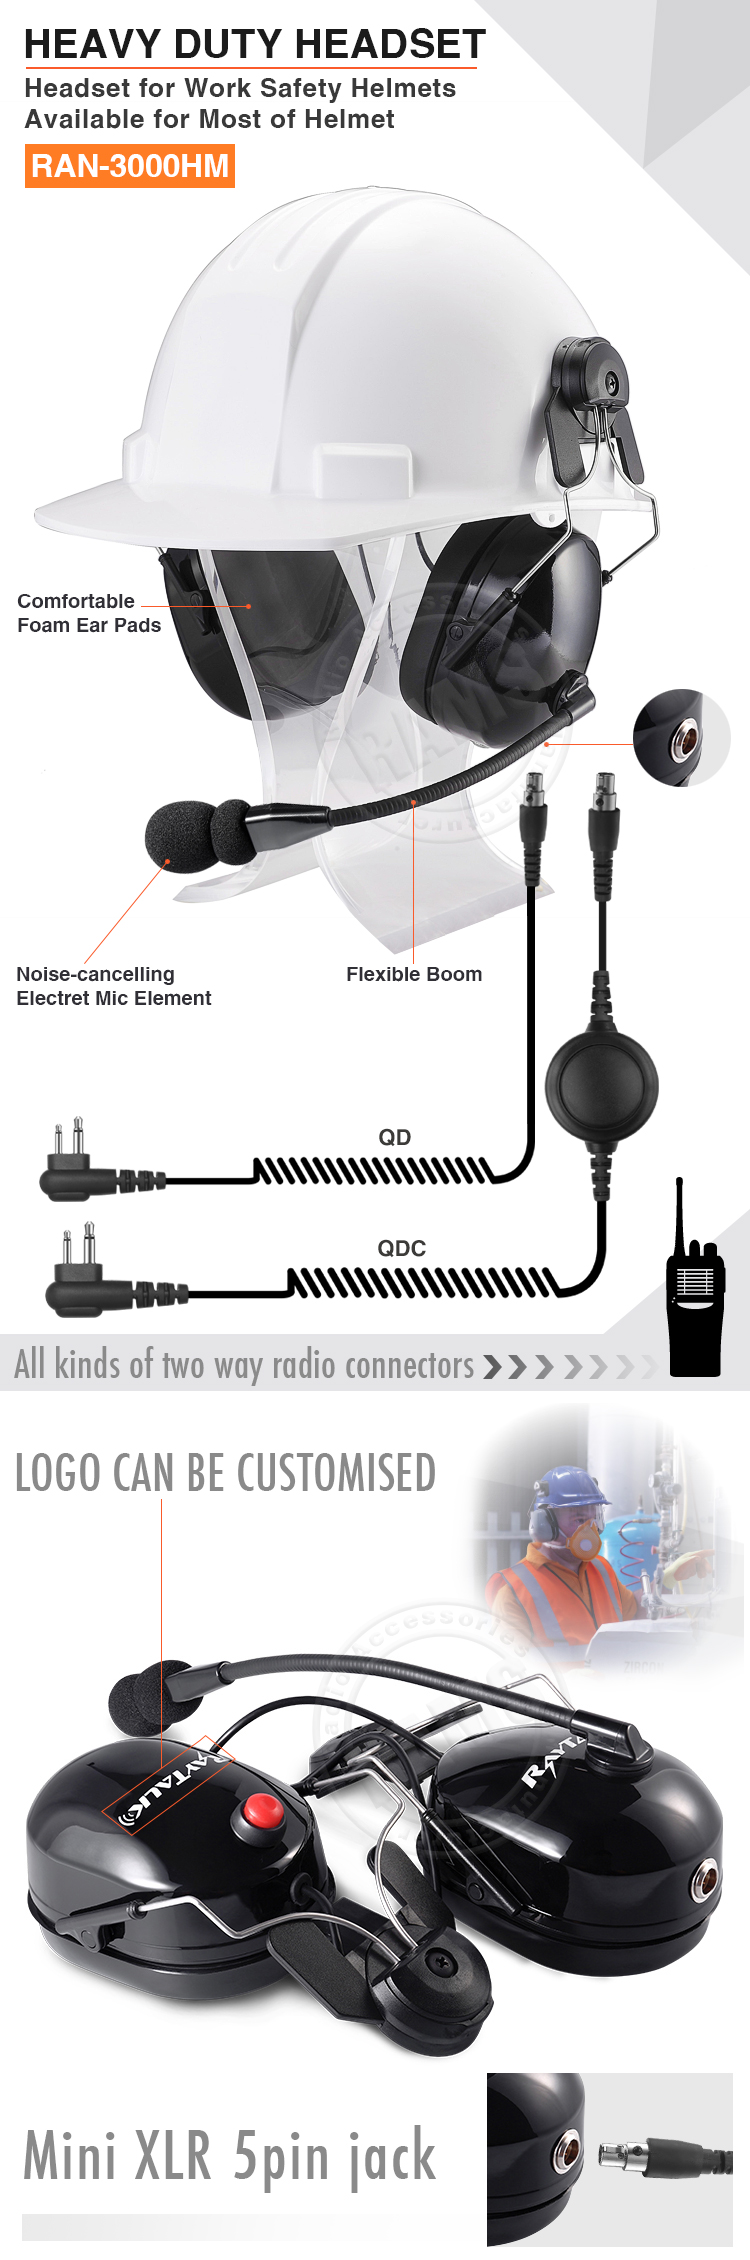 Noise canceling electret mic with quick disconnect cable for two way radio